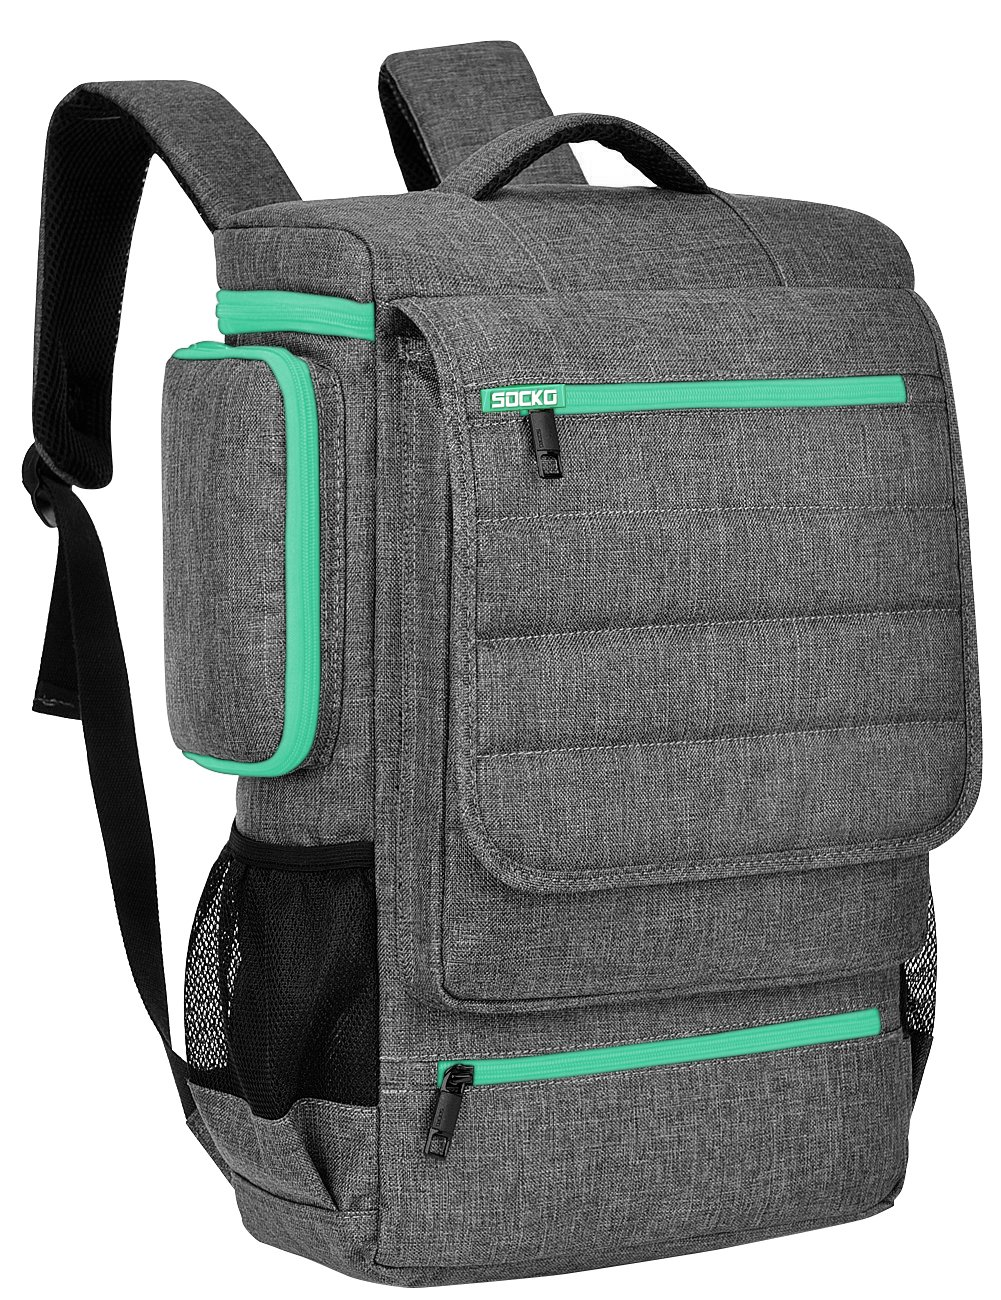 Laptop Backpack 18.4 Inch BRINCH Water Resistant Large Travel Backpack for Men Luggage Knapsack Computer Rucksack Hiking Bag College Backpack Fits 18-18.4 Inch Laptop Notebook Computer,Grey-Green by BRINCH